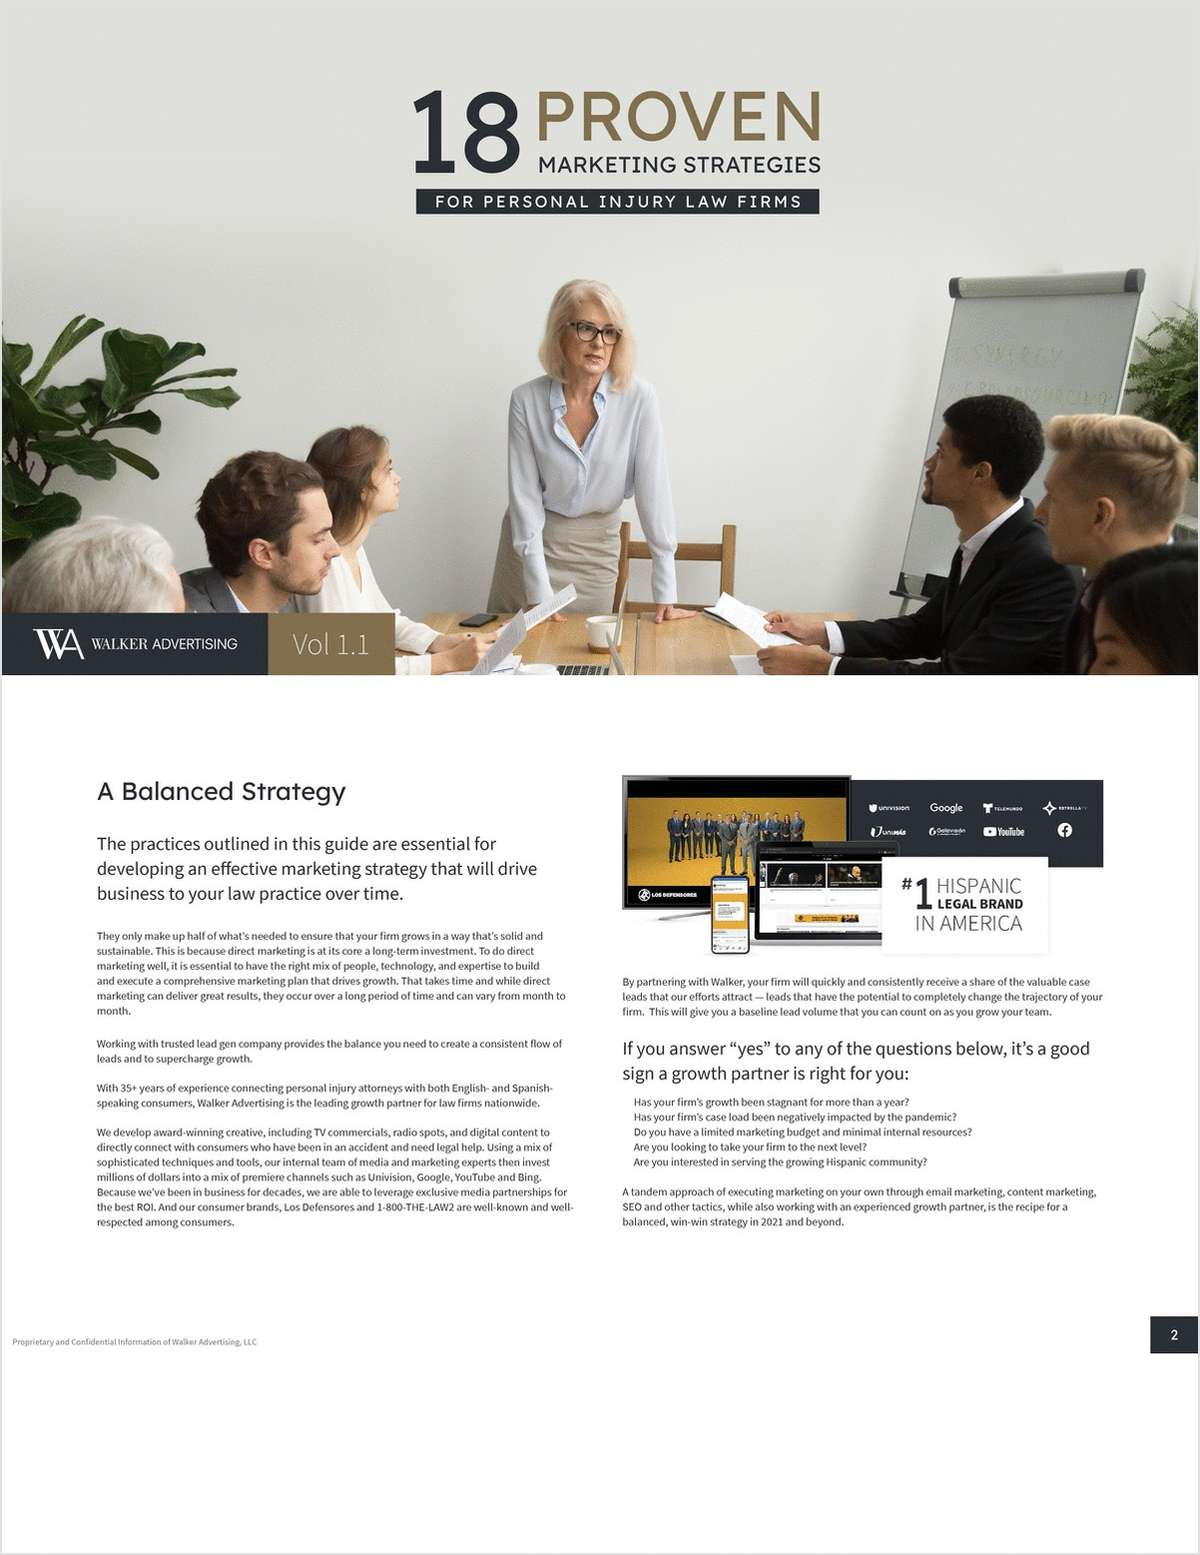 Personal Injury Law Firm Marketing: 18 Proven Strategies For 2021